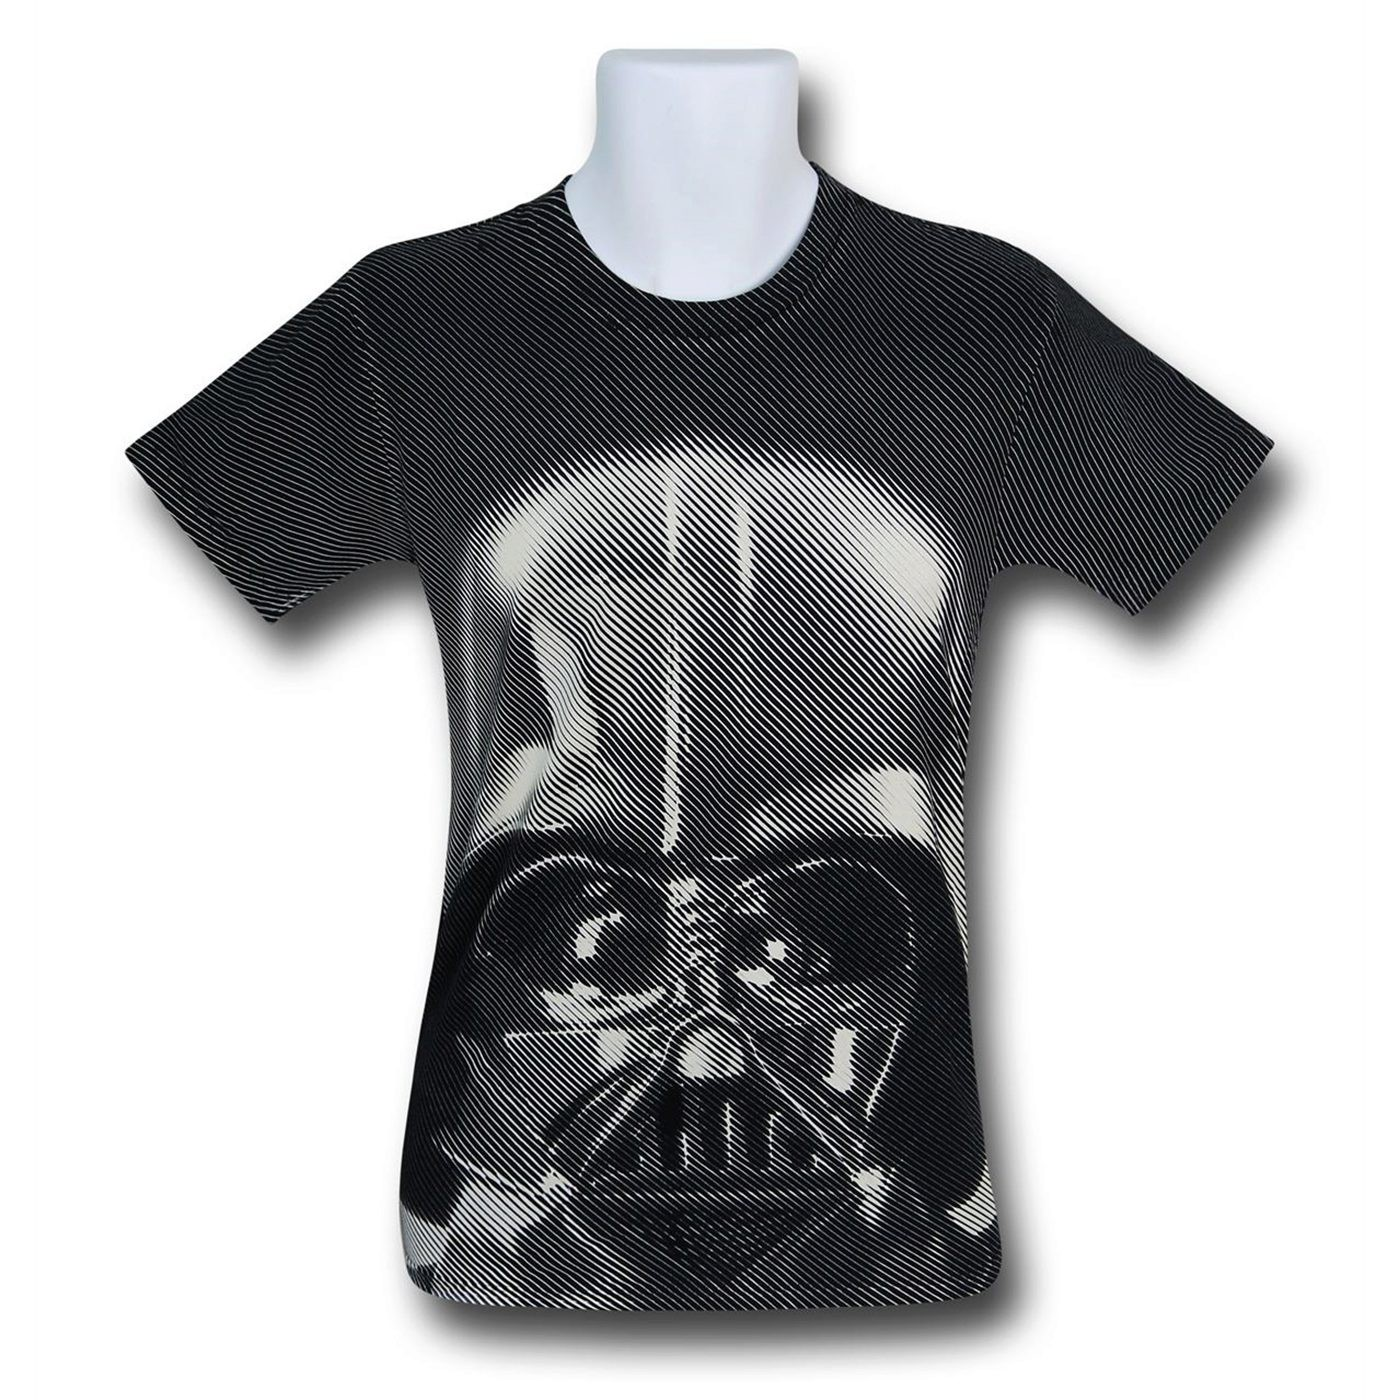 Star Wars Darth Vader All-Over Print Men's T-Shirt